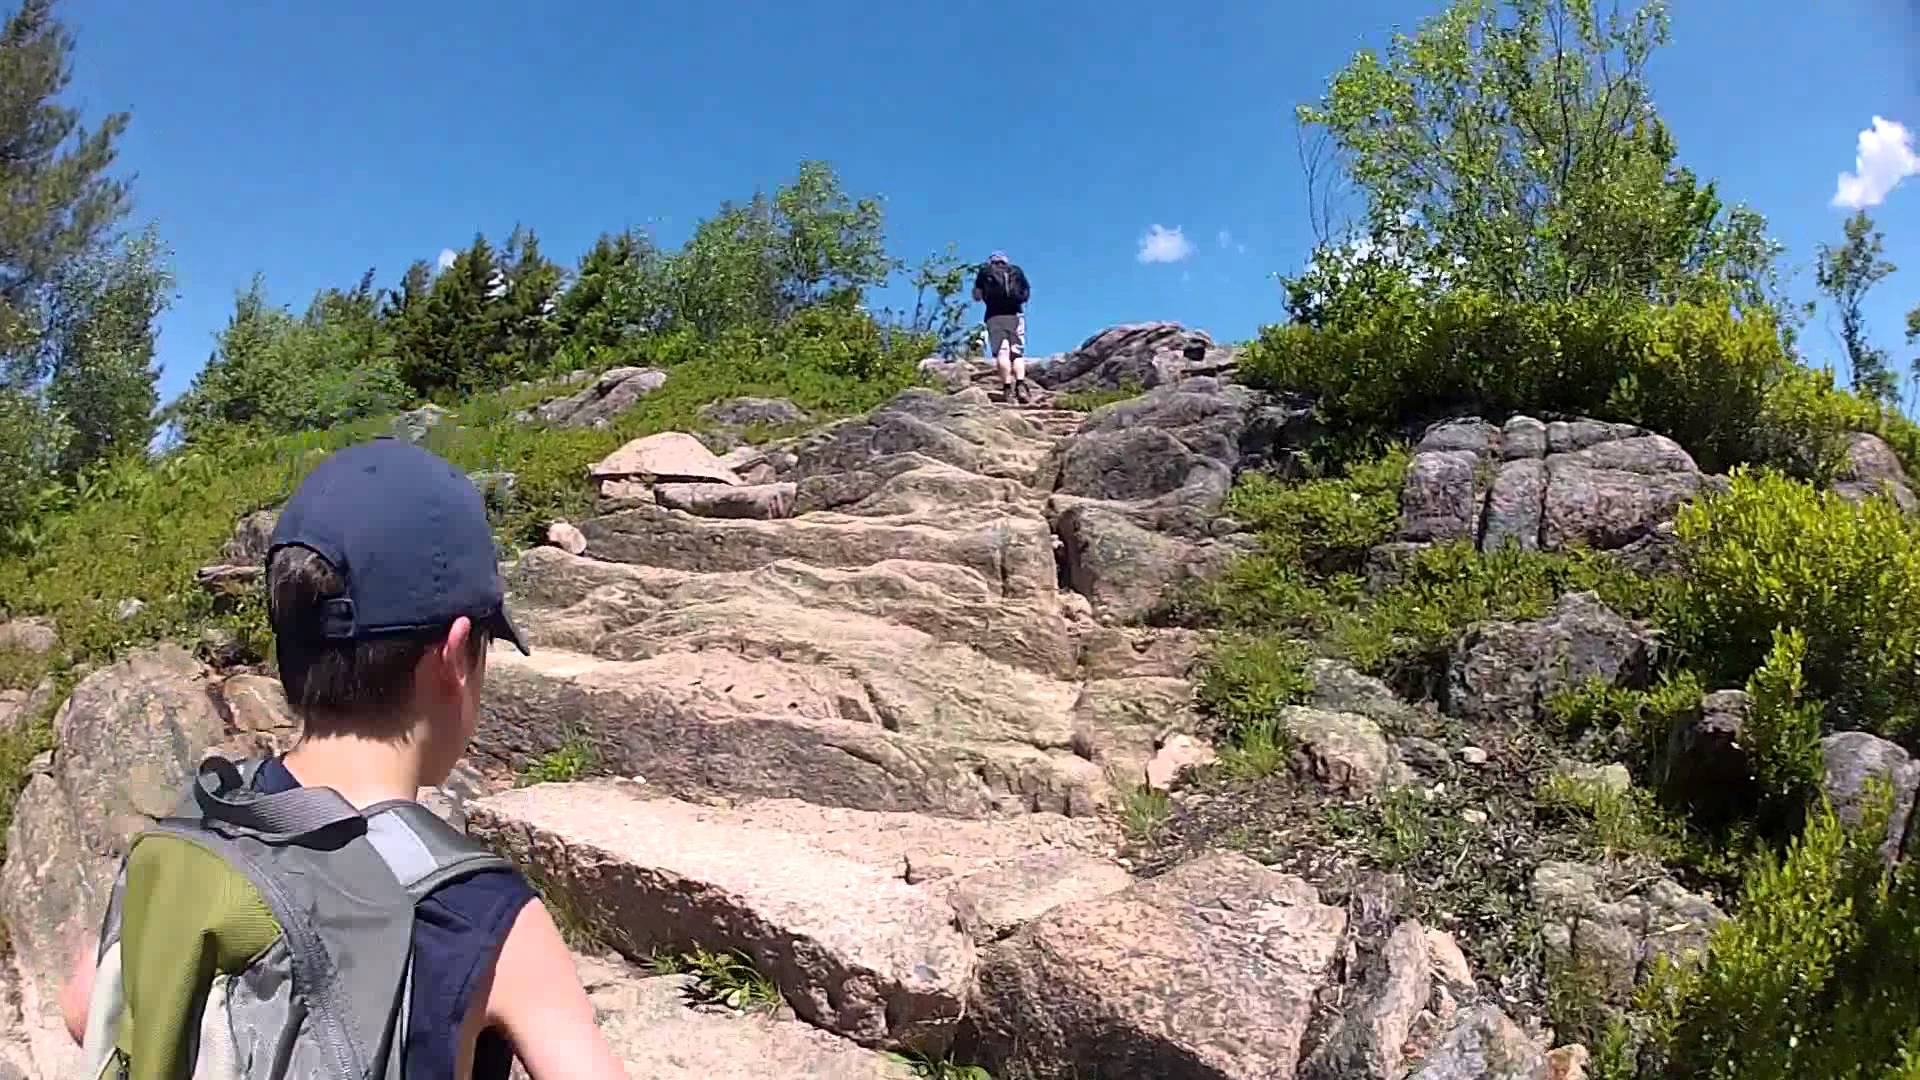 hiking acadia mountain maine portland trails trail park national gorham near usa flavorverse